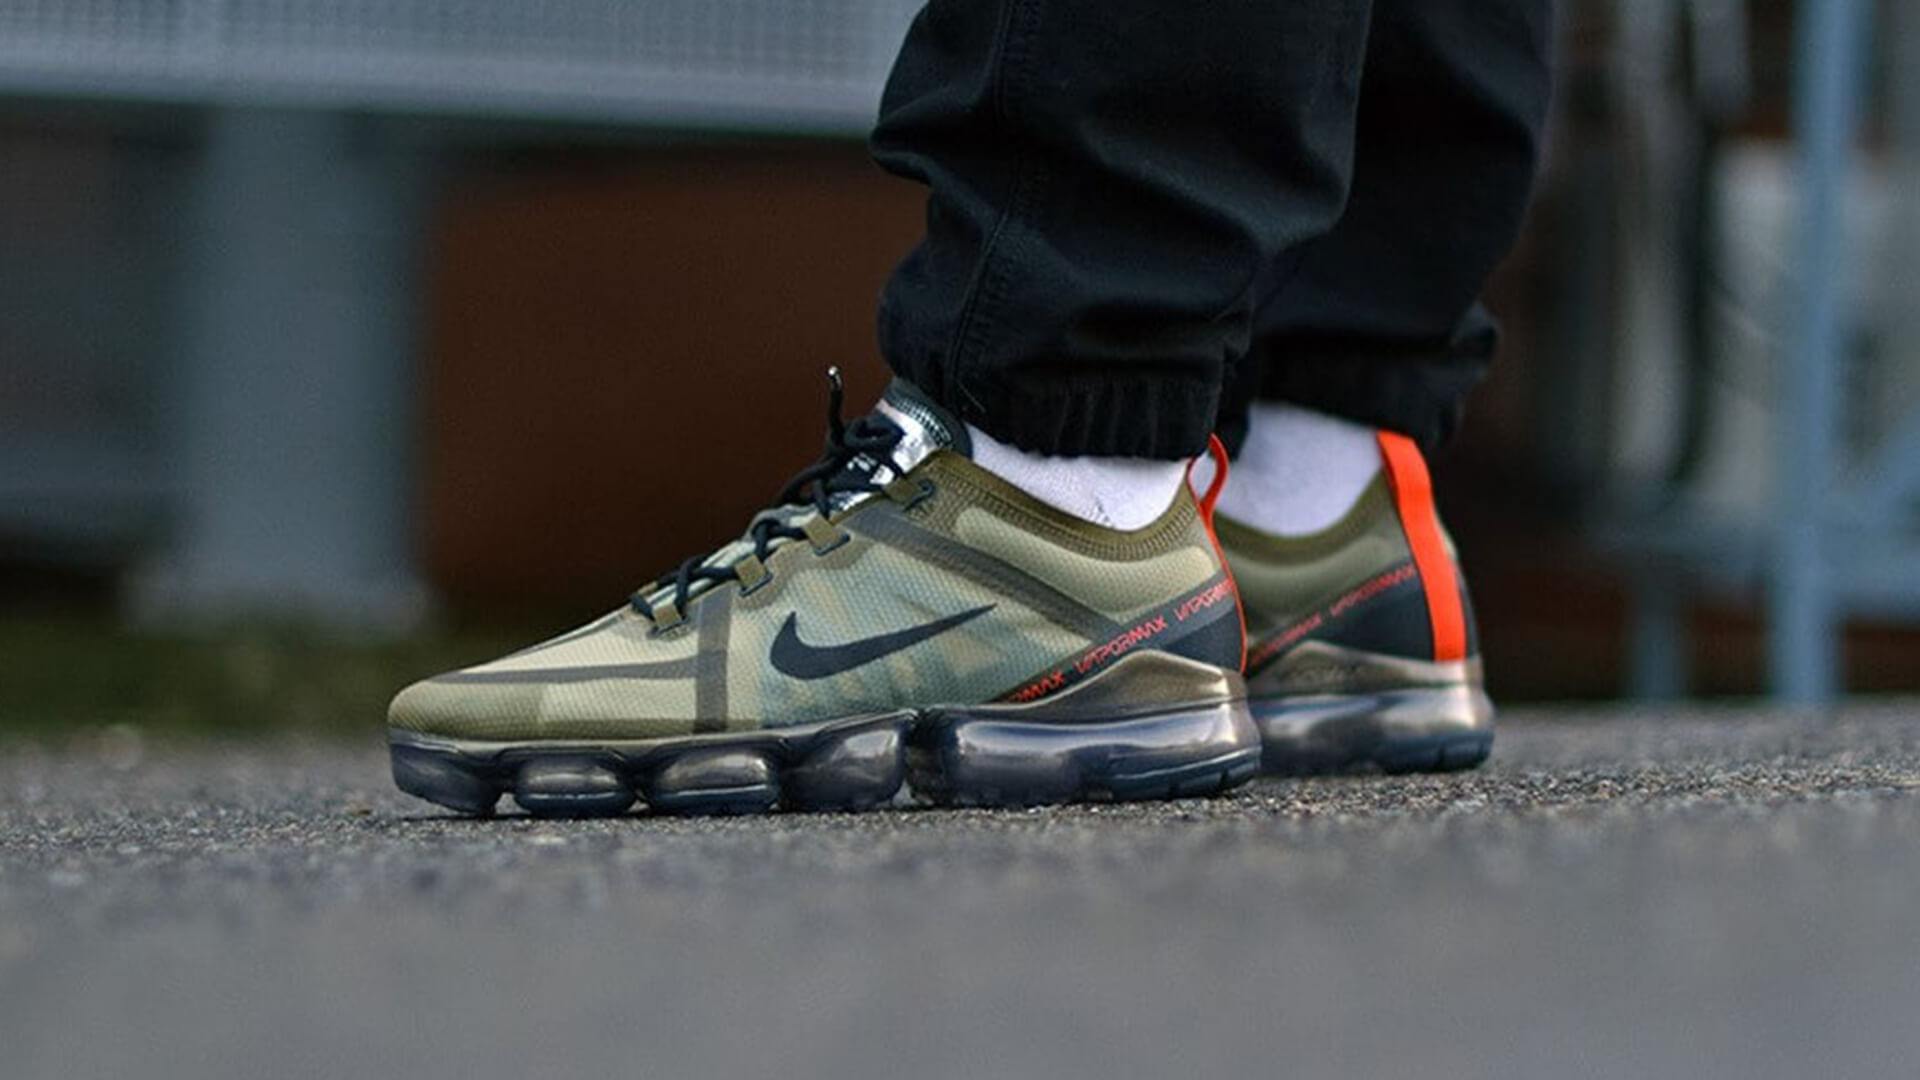 Nike Zoom Grey And Green Latest Nike Air Vapormax Trainer Releases Next Drops The